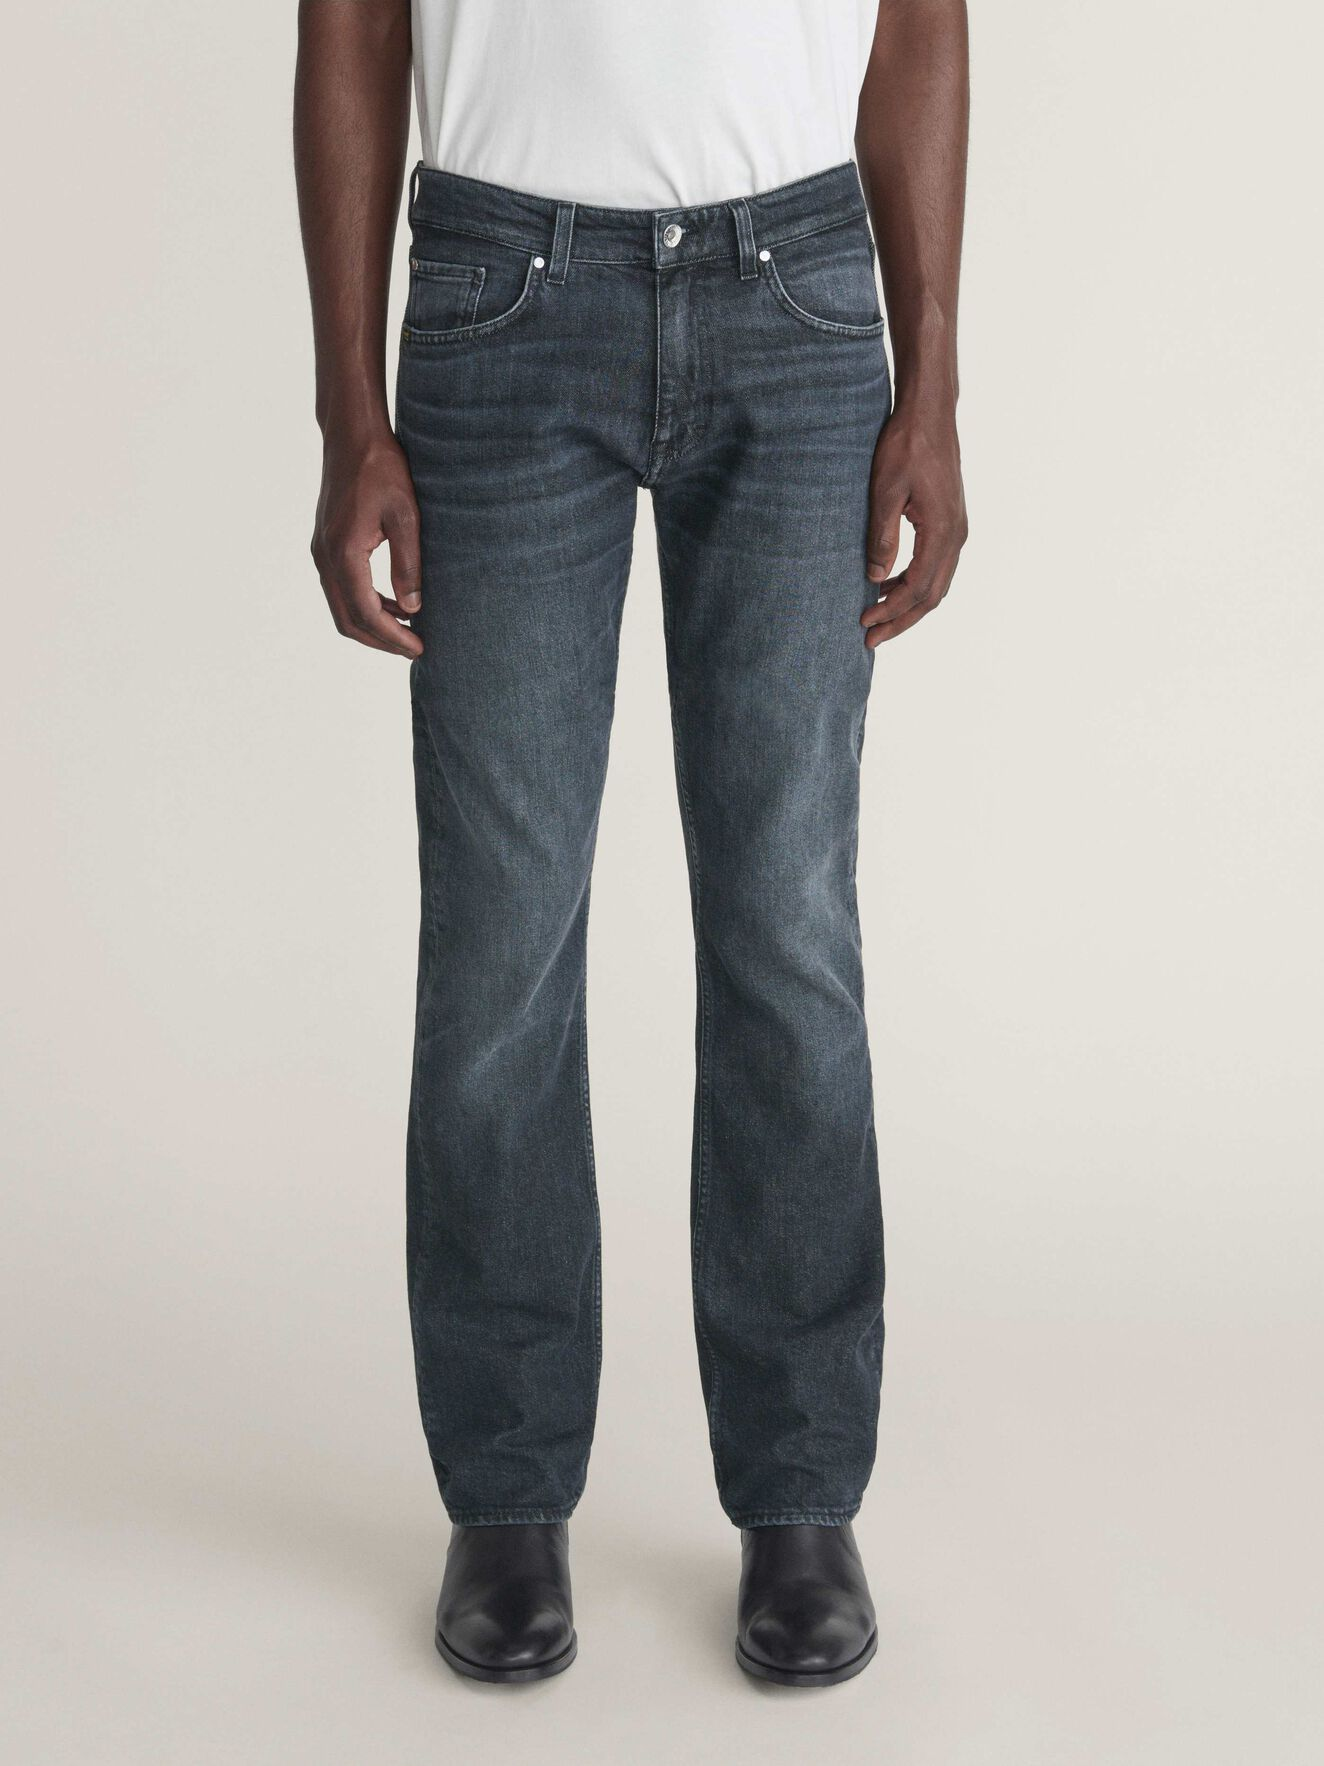 Hein Jeans in Black from Tiger of Sweden